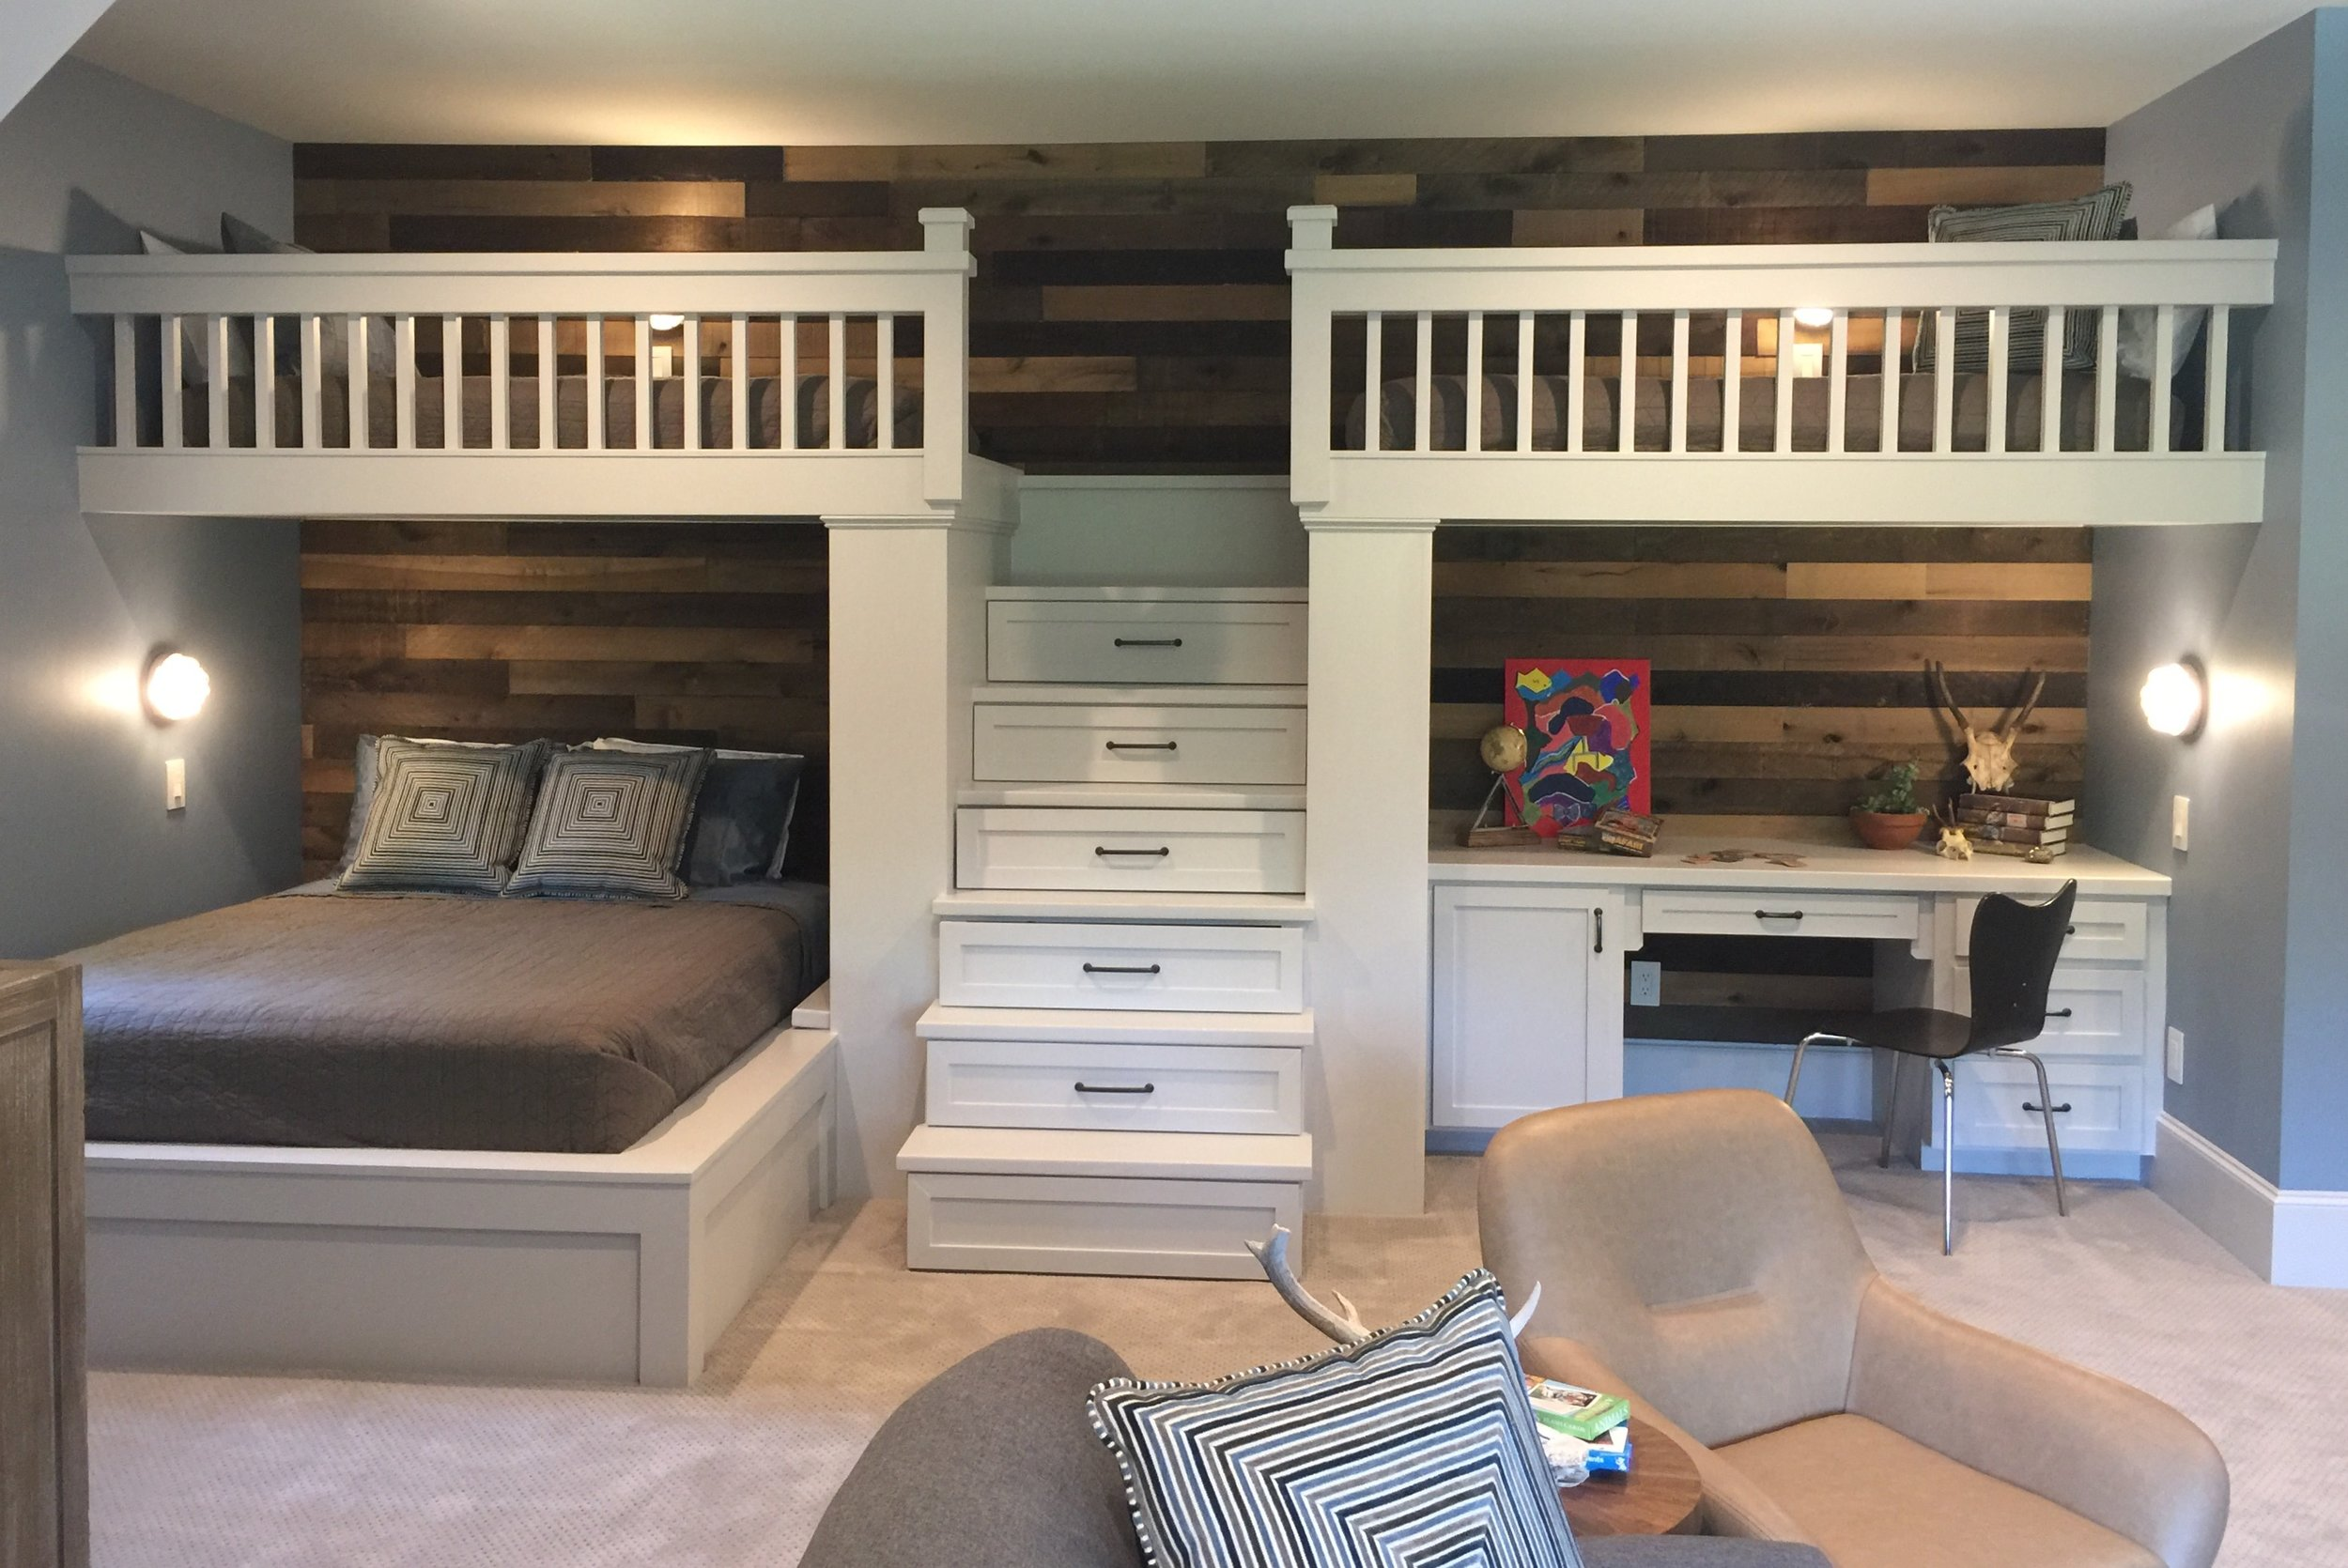 Coolest Bunk Room Ever And More At The Southern Living Showcase Home Part Ii Designed